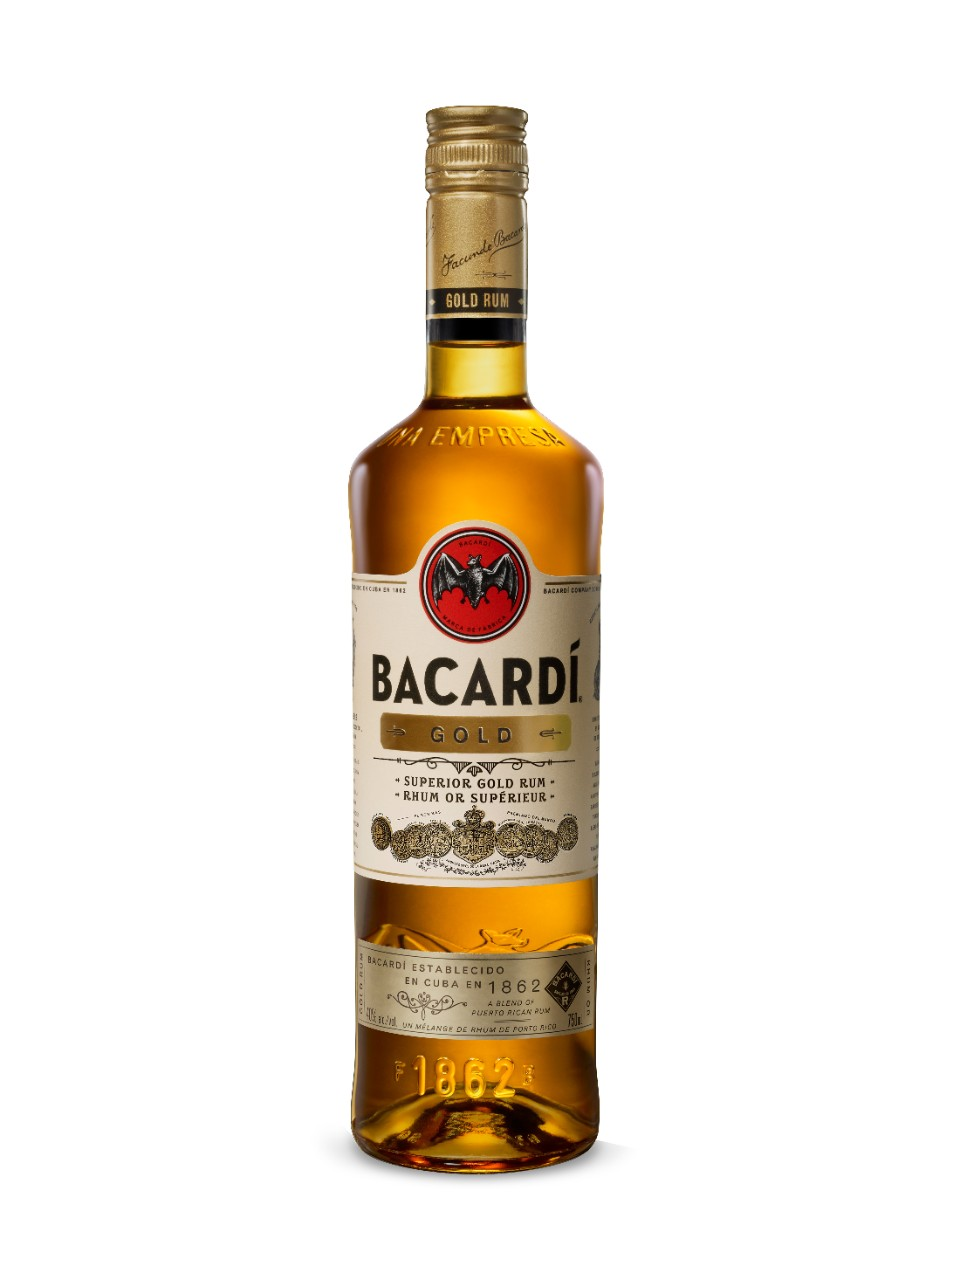 Bacardi Gold Rum from LCBO